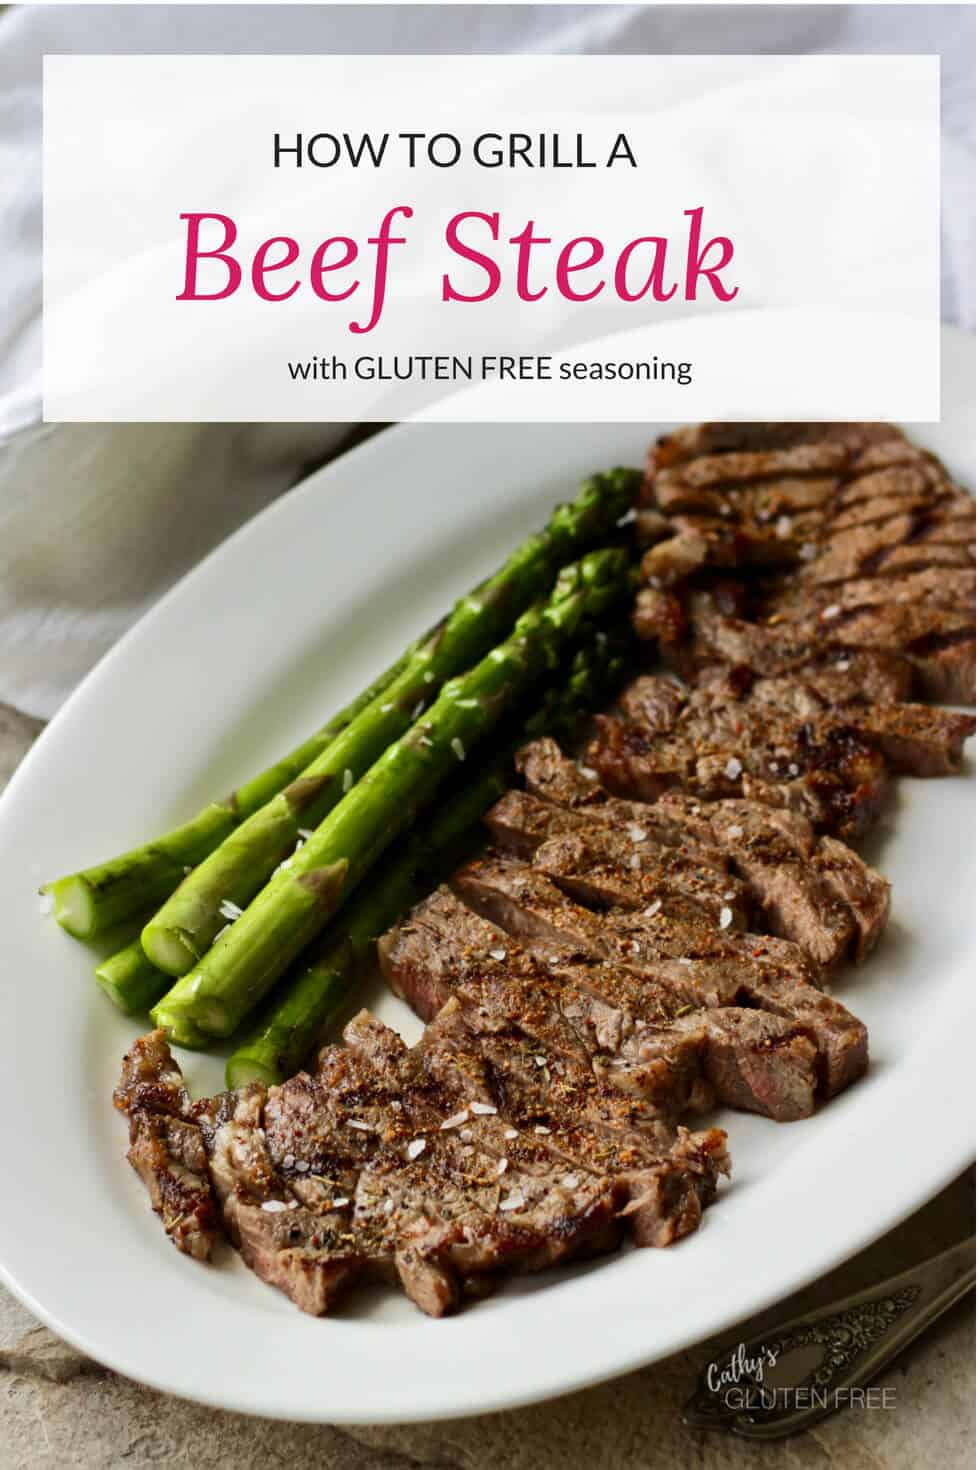 Grilled Beef Steak with Gluten Free Spice Mix #paleo #glutenfree #beef #steak #grill